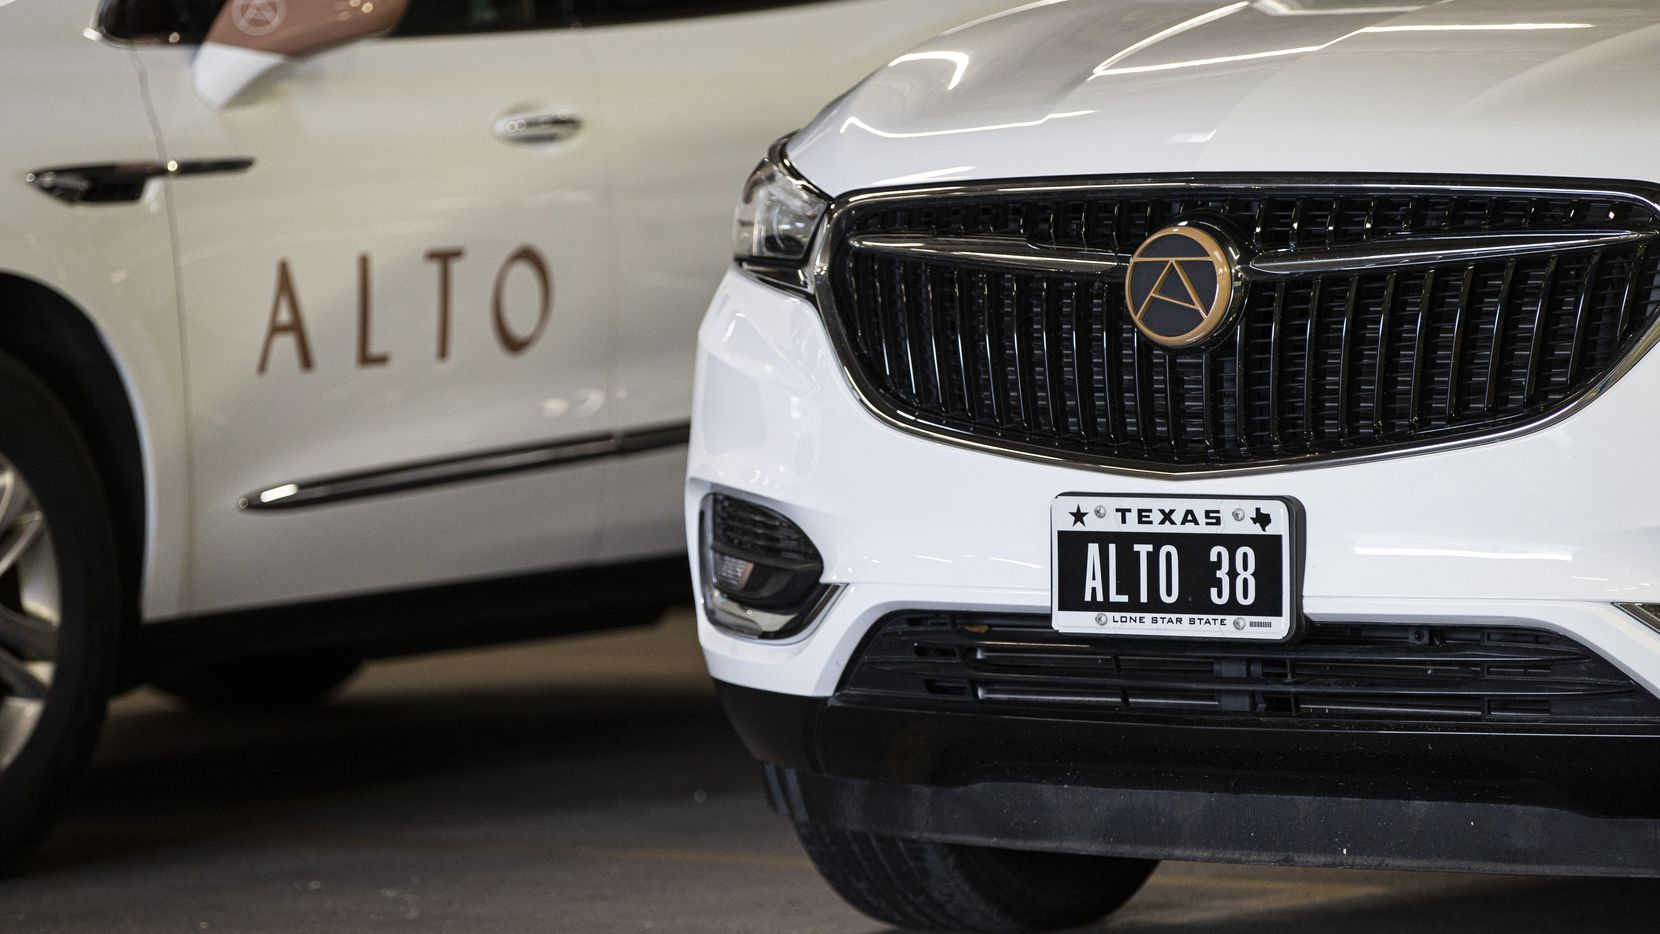 Ride-hailing service Alto maintains a fleet of SUVs at the company's operations center in Northwest Dallas. Unlike Uber and Lyft, it owns its vehicles and its drivers are employees. (Brandon Wade/Special Contributor)